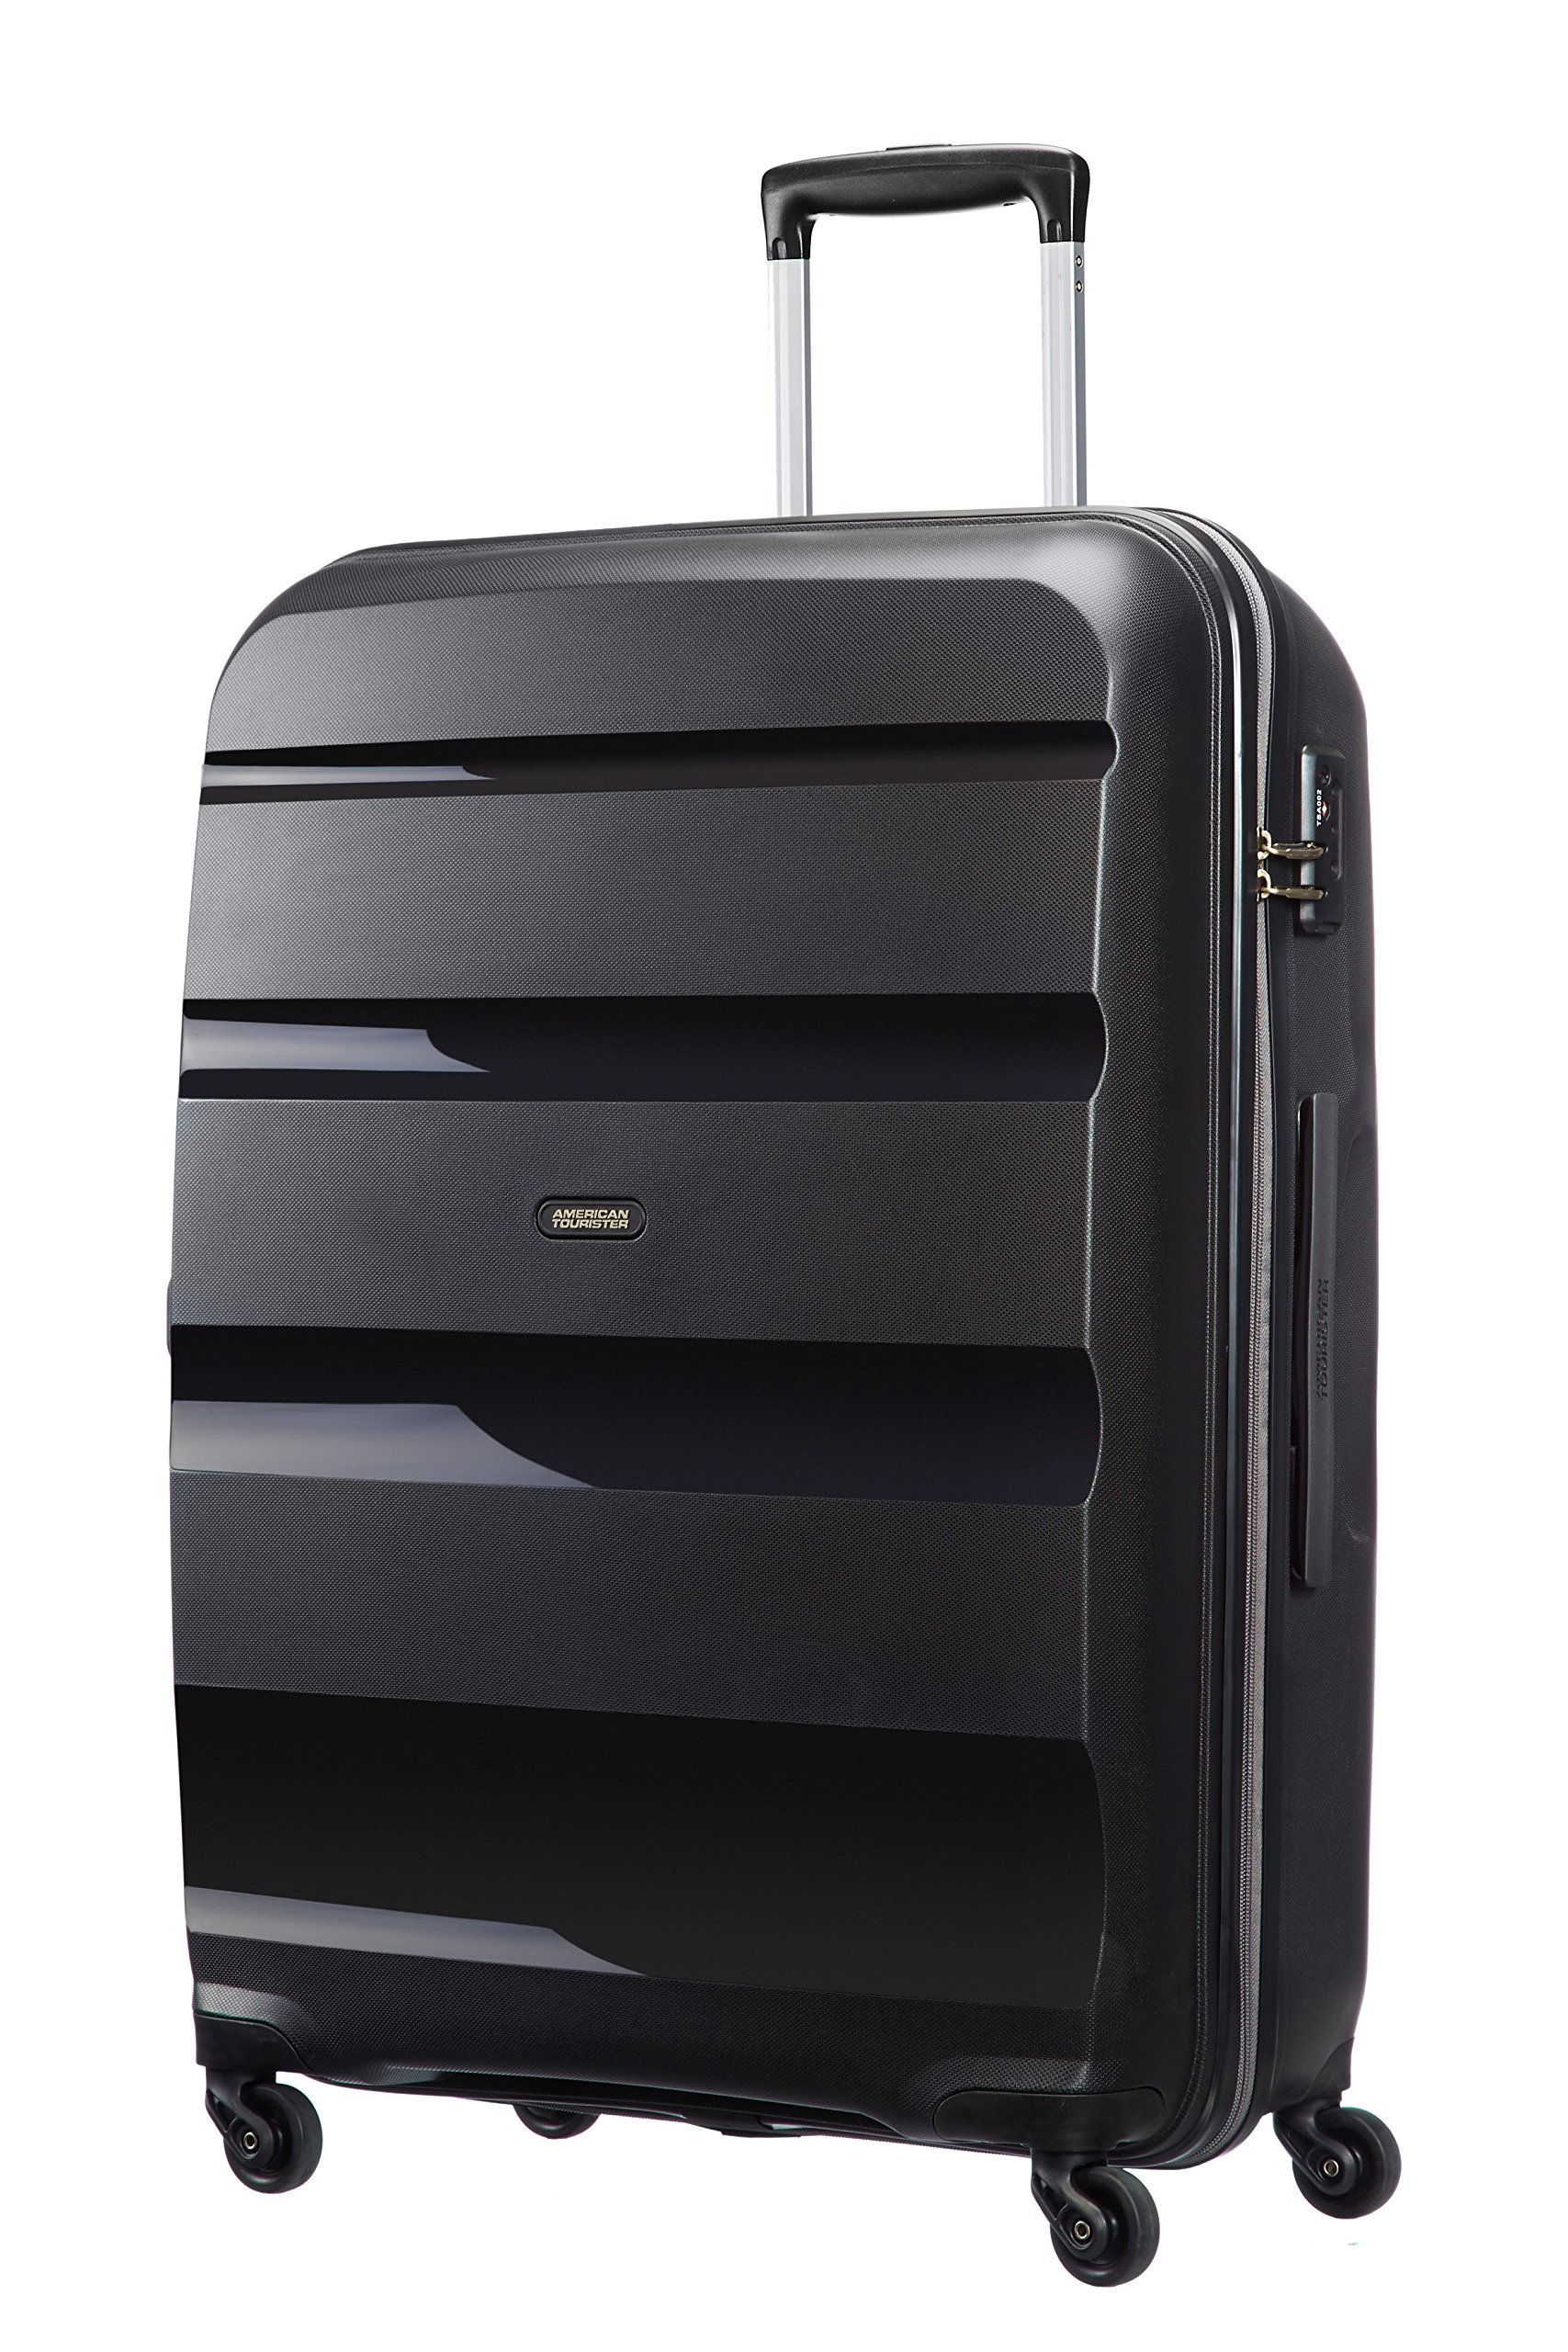 American Tourister - Bon Air - Spinner 75 cm, 91 L, Noir (Black) product image